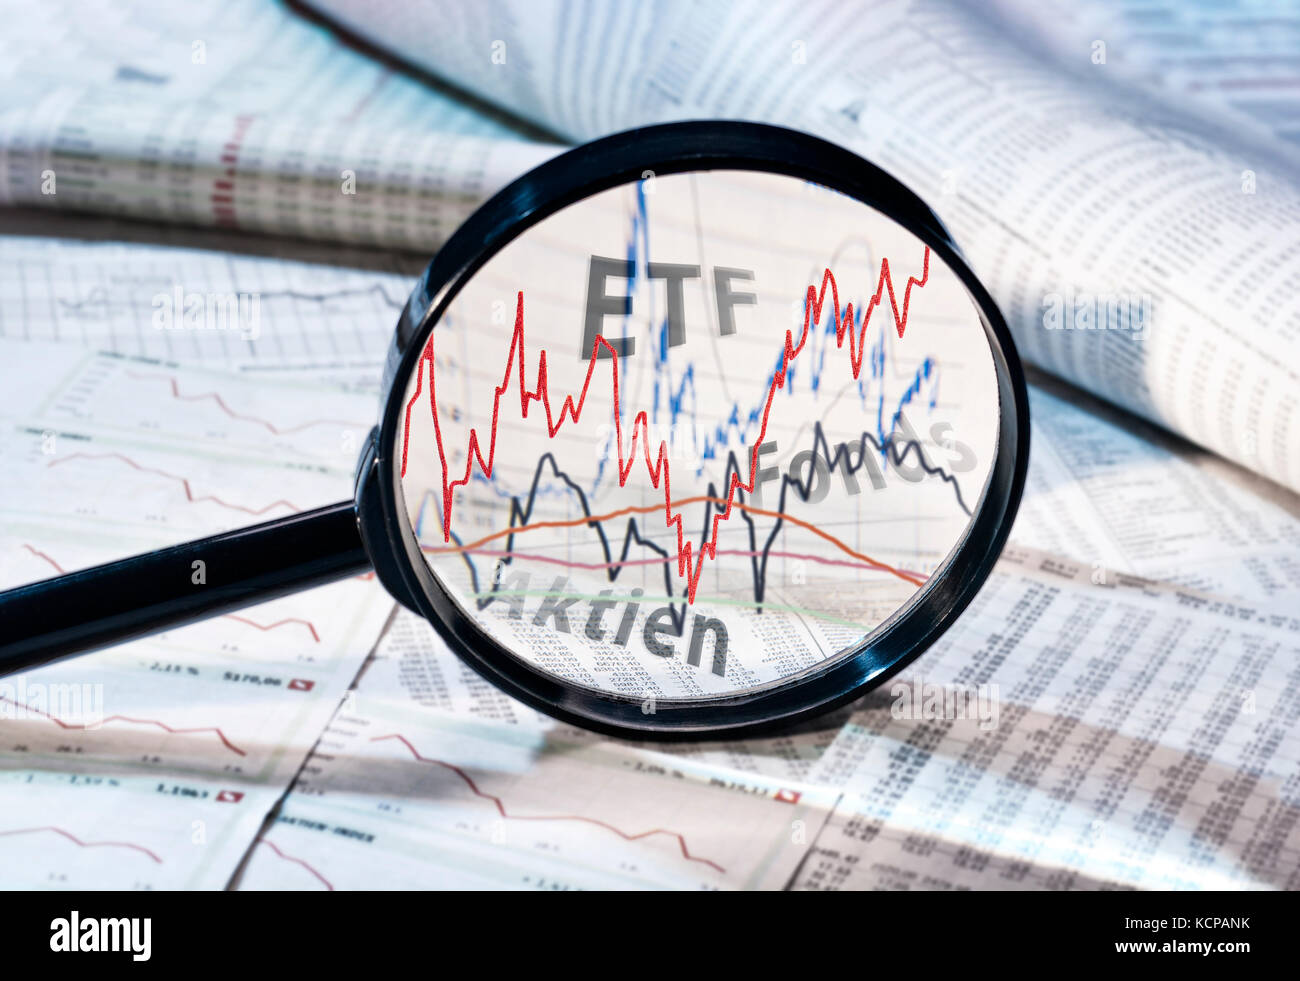 Magnifying glass shows the courses of ETF, funds and shares Stock Photo